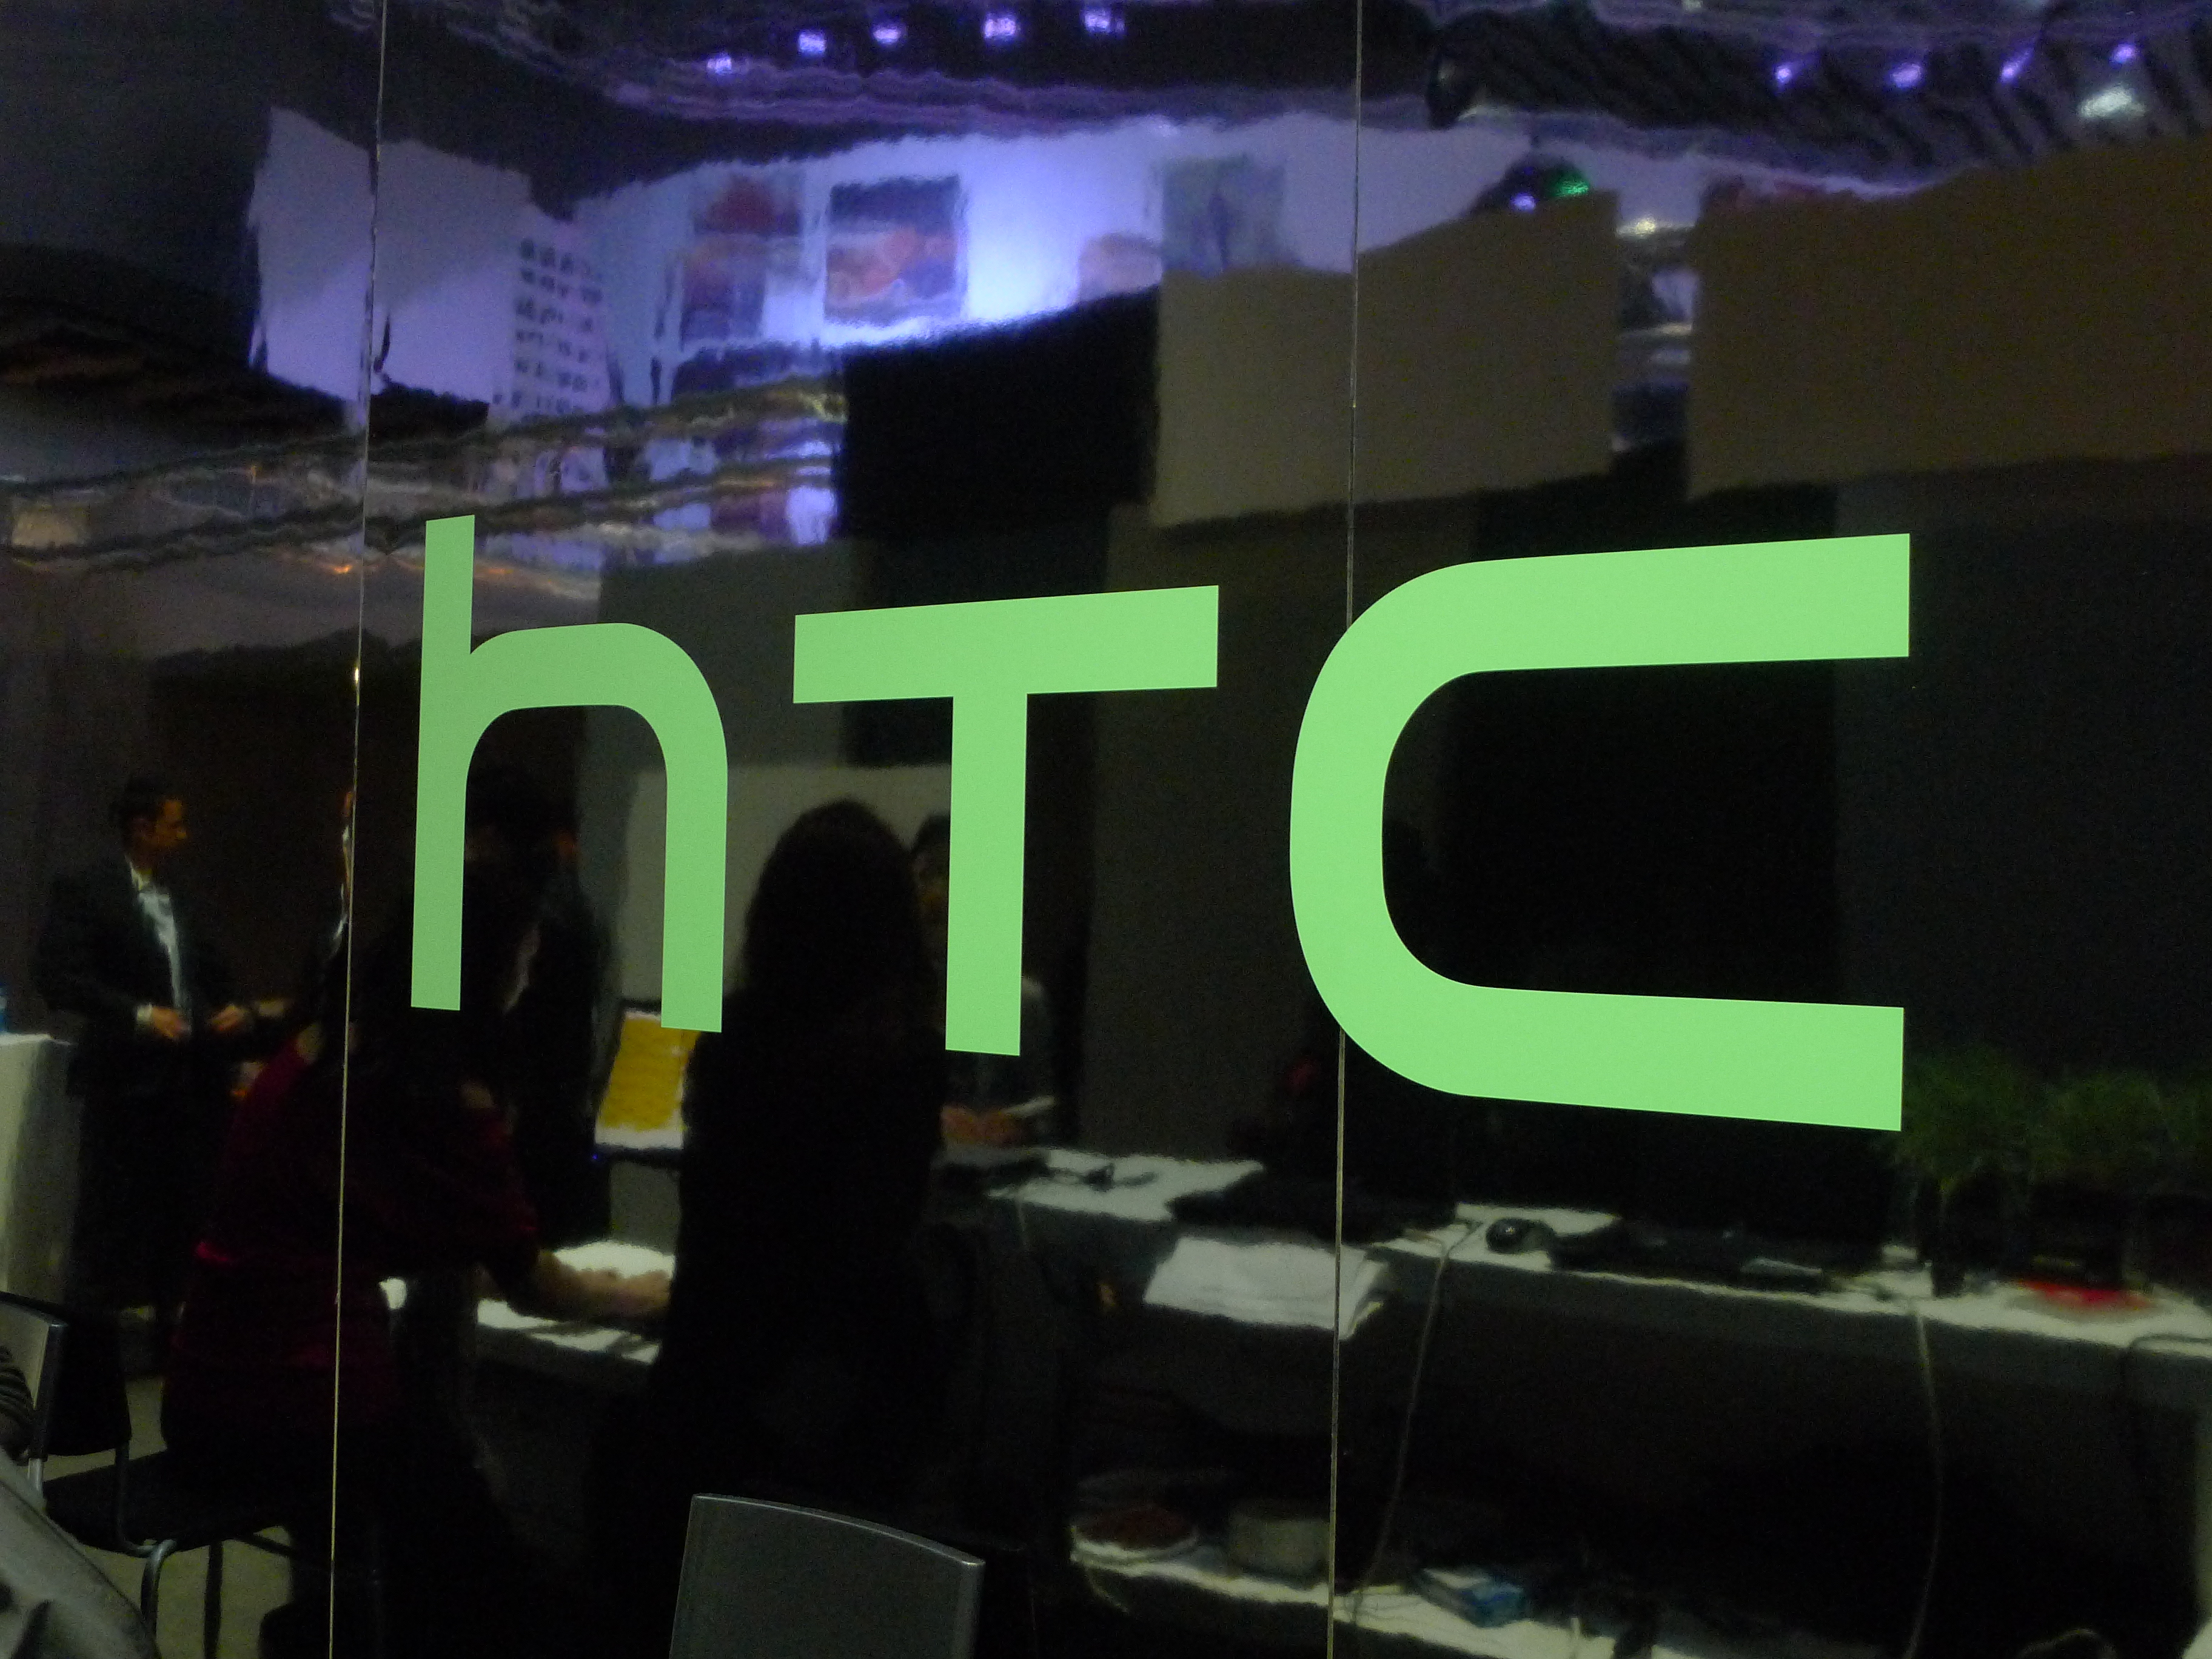 HTC's new One 'M8' smartphone will get a Google Play Edition, HTC Gallery app suggests - The Next Web